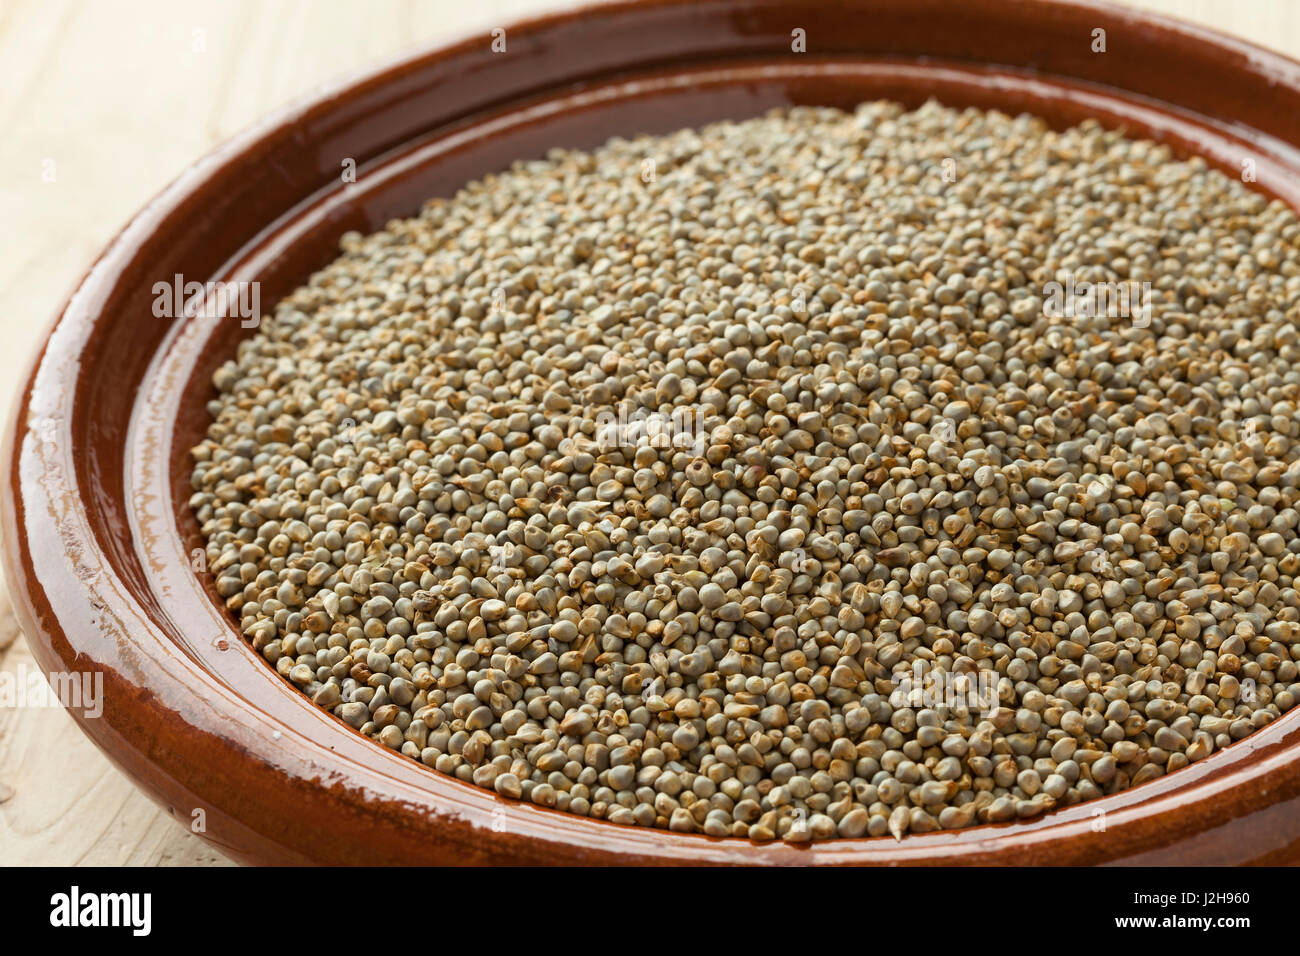 Dish with dried pearl millet close up - Stock Image